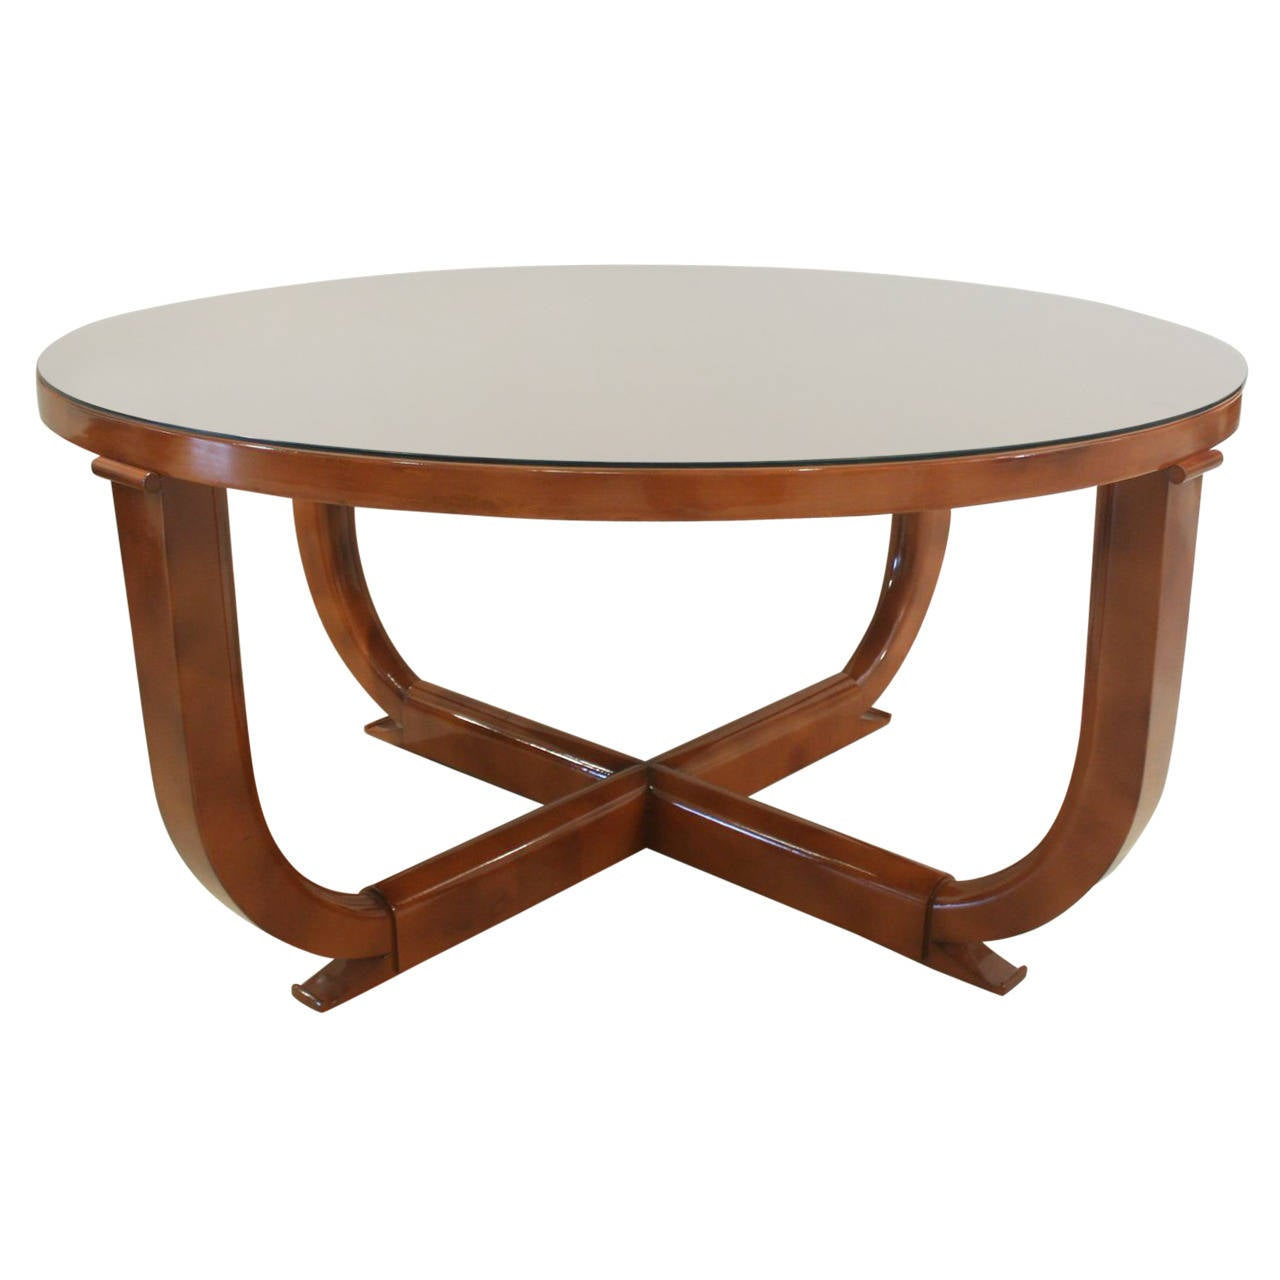 French Lacquer Centre Table